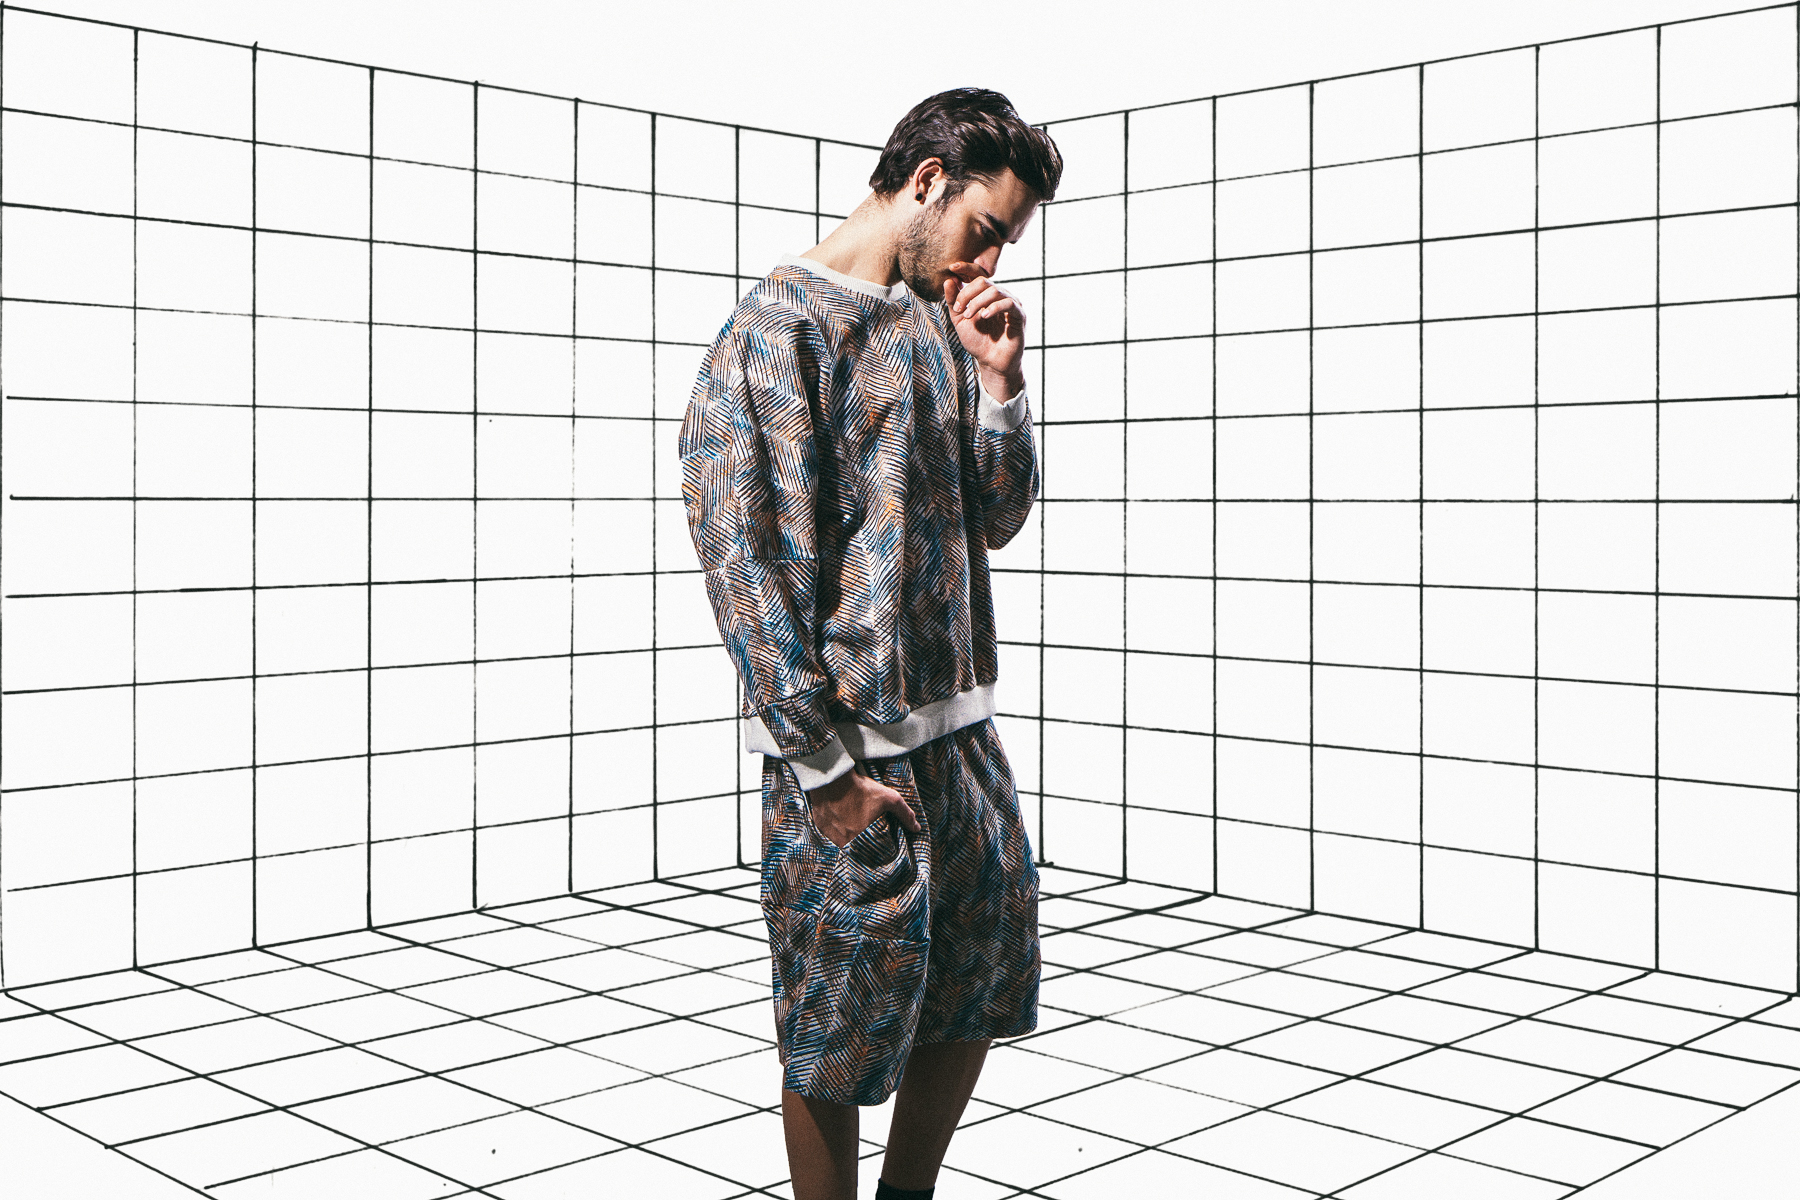 http://hypebeast.com/2014/4/henrik-vibskov-2014-spring-summer-the-bathtub-observer-collection